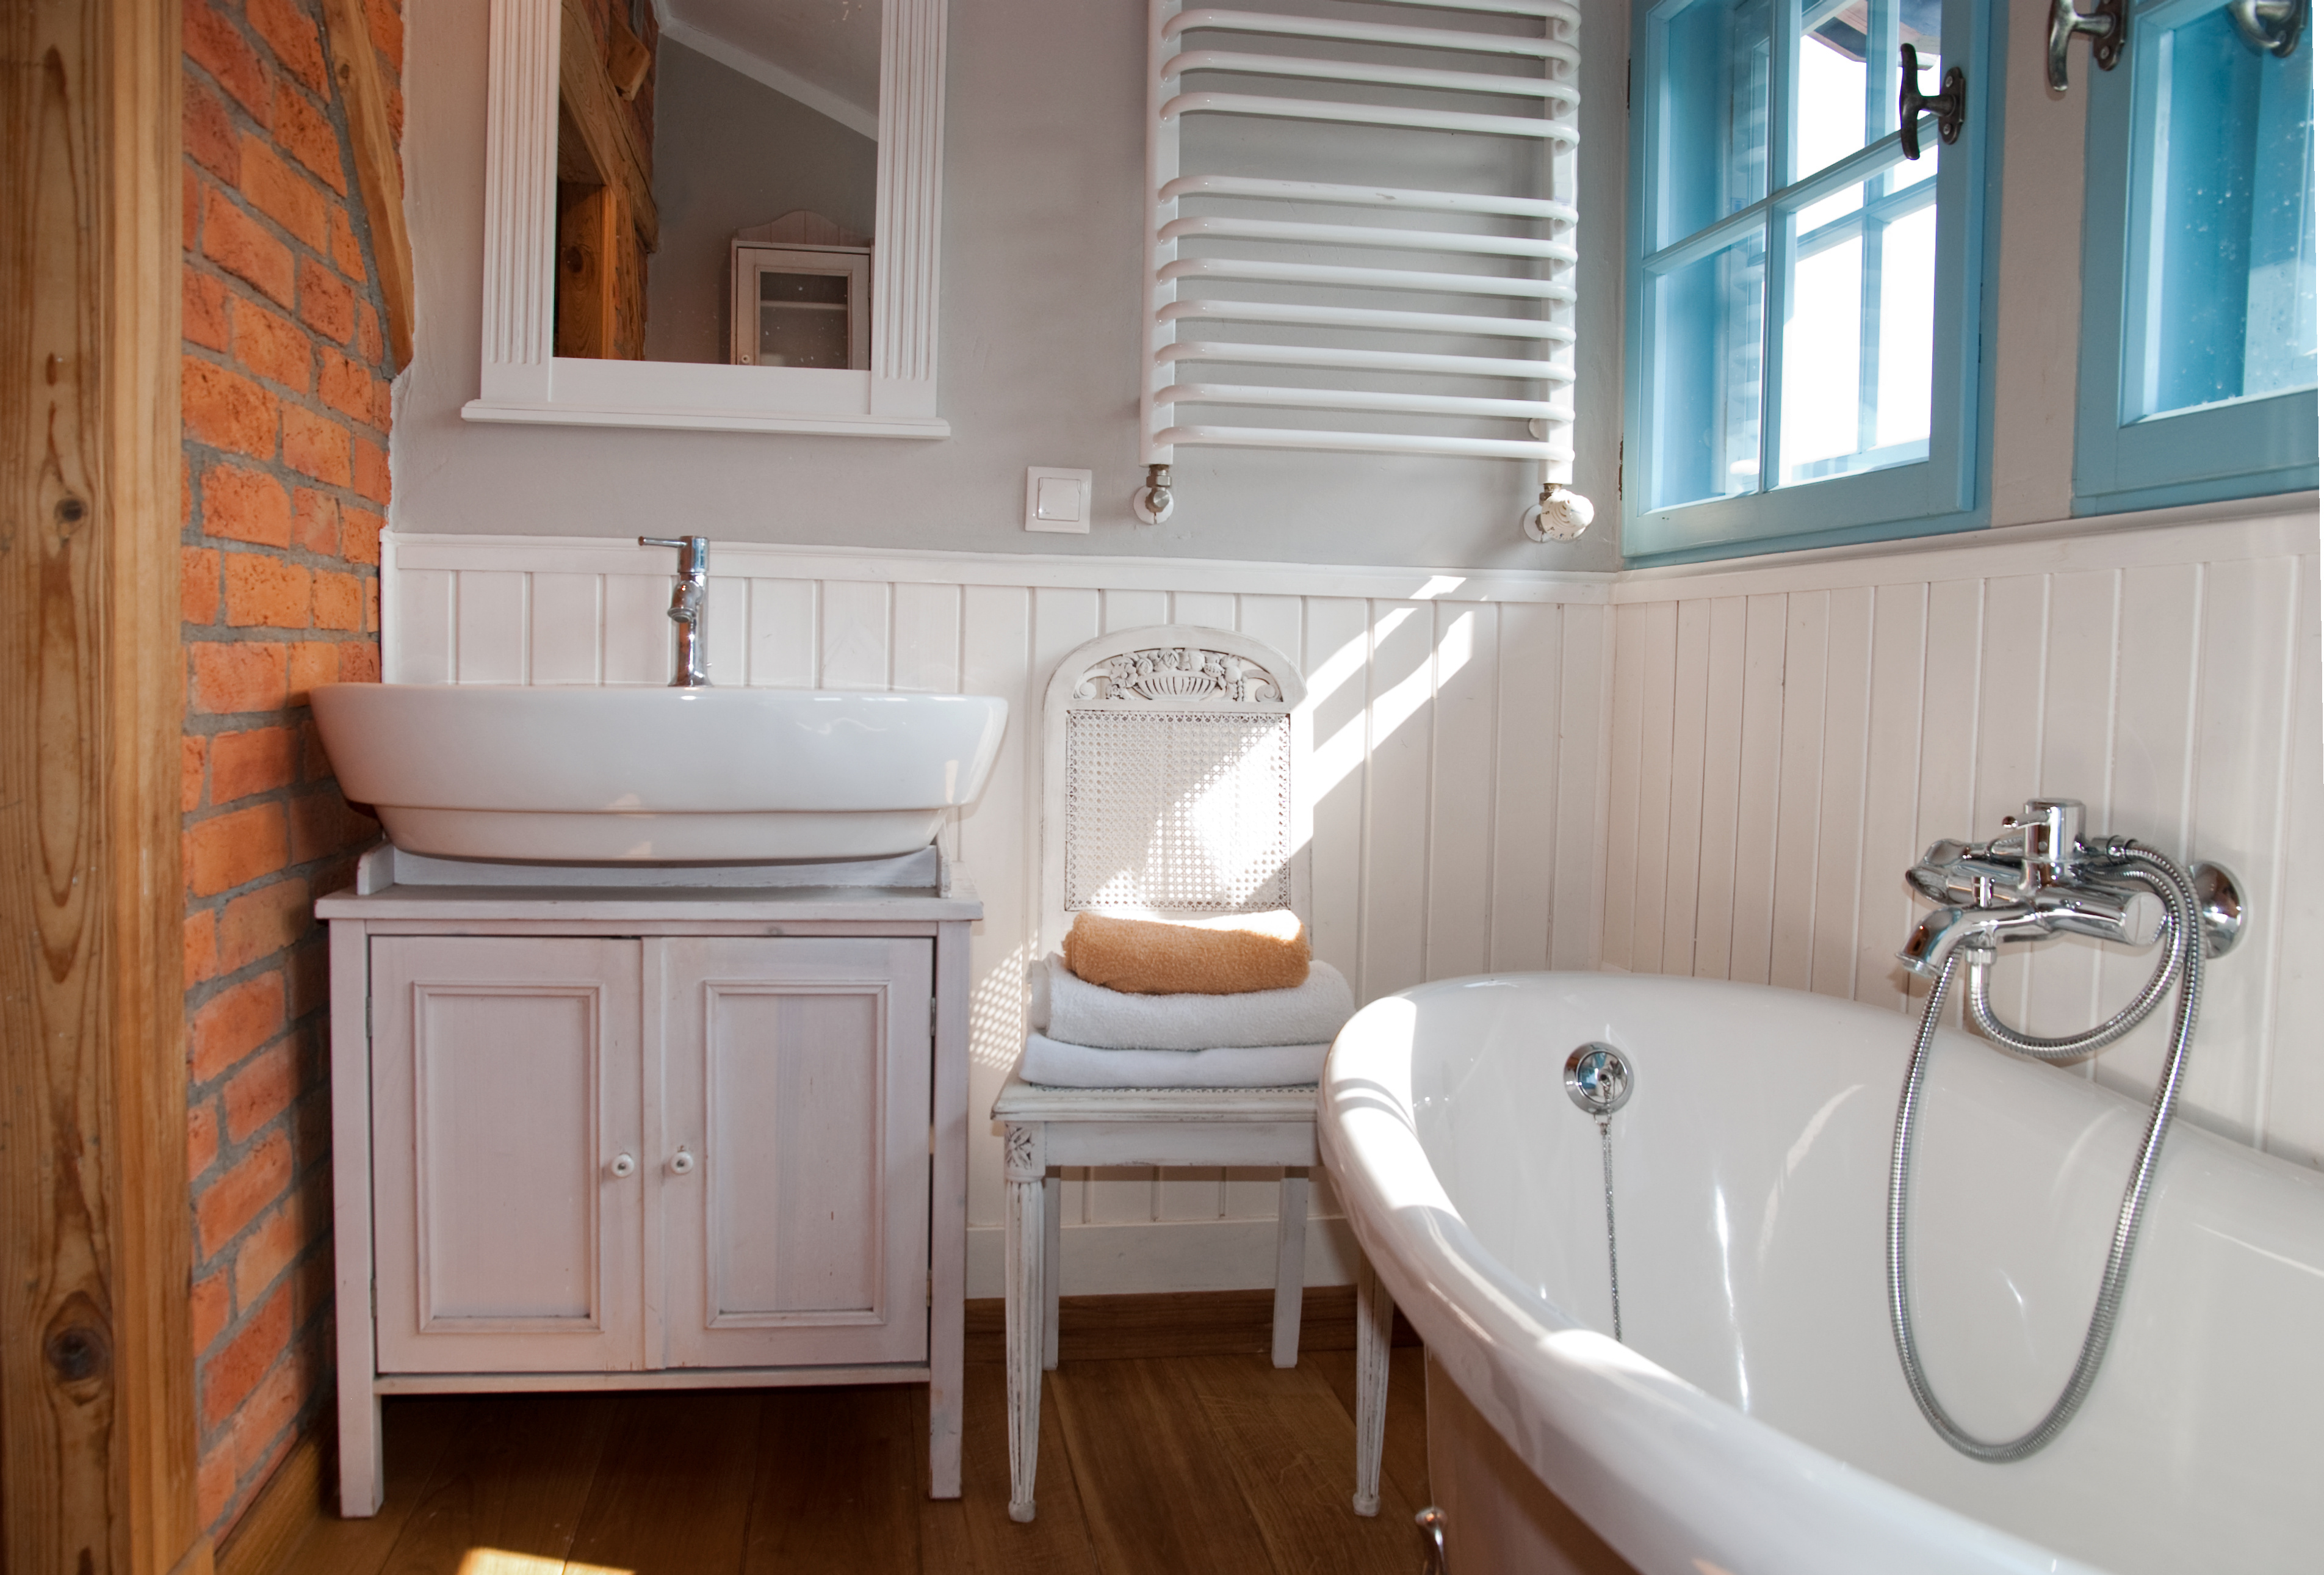 White washed decorative interior wall cladding used in a rustic bathroom